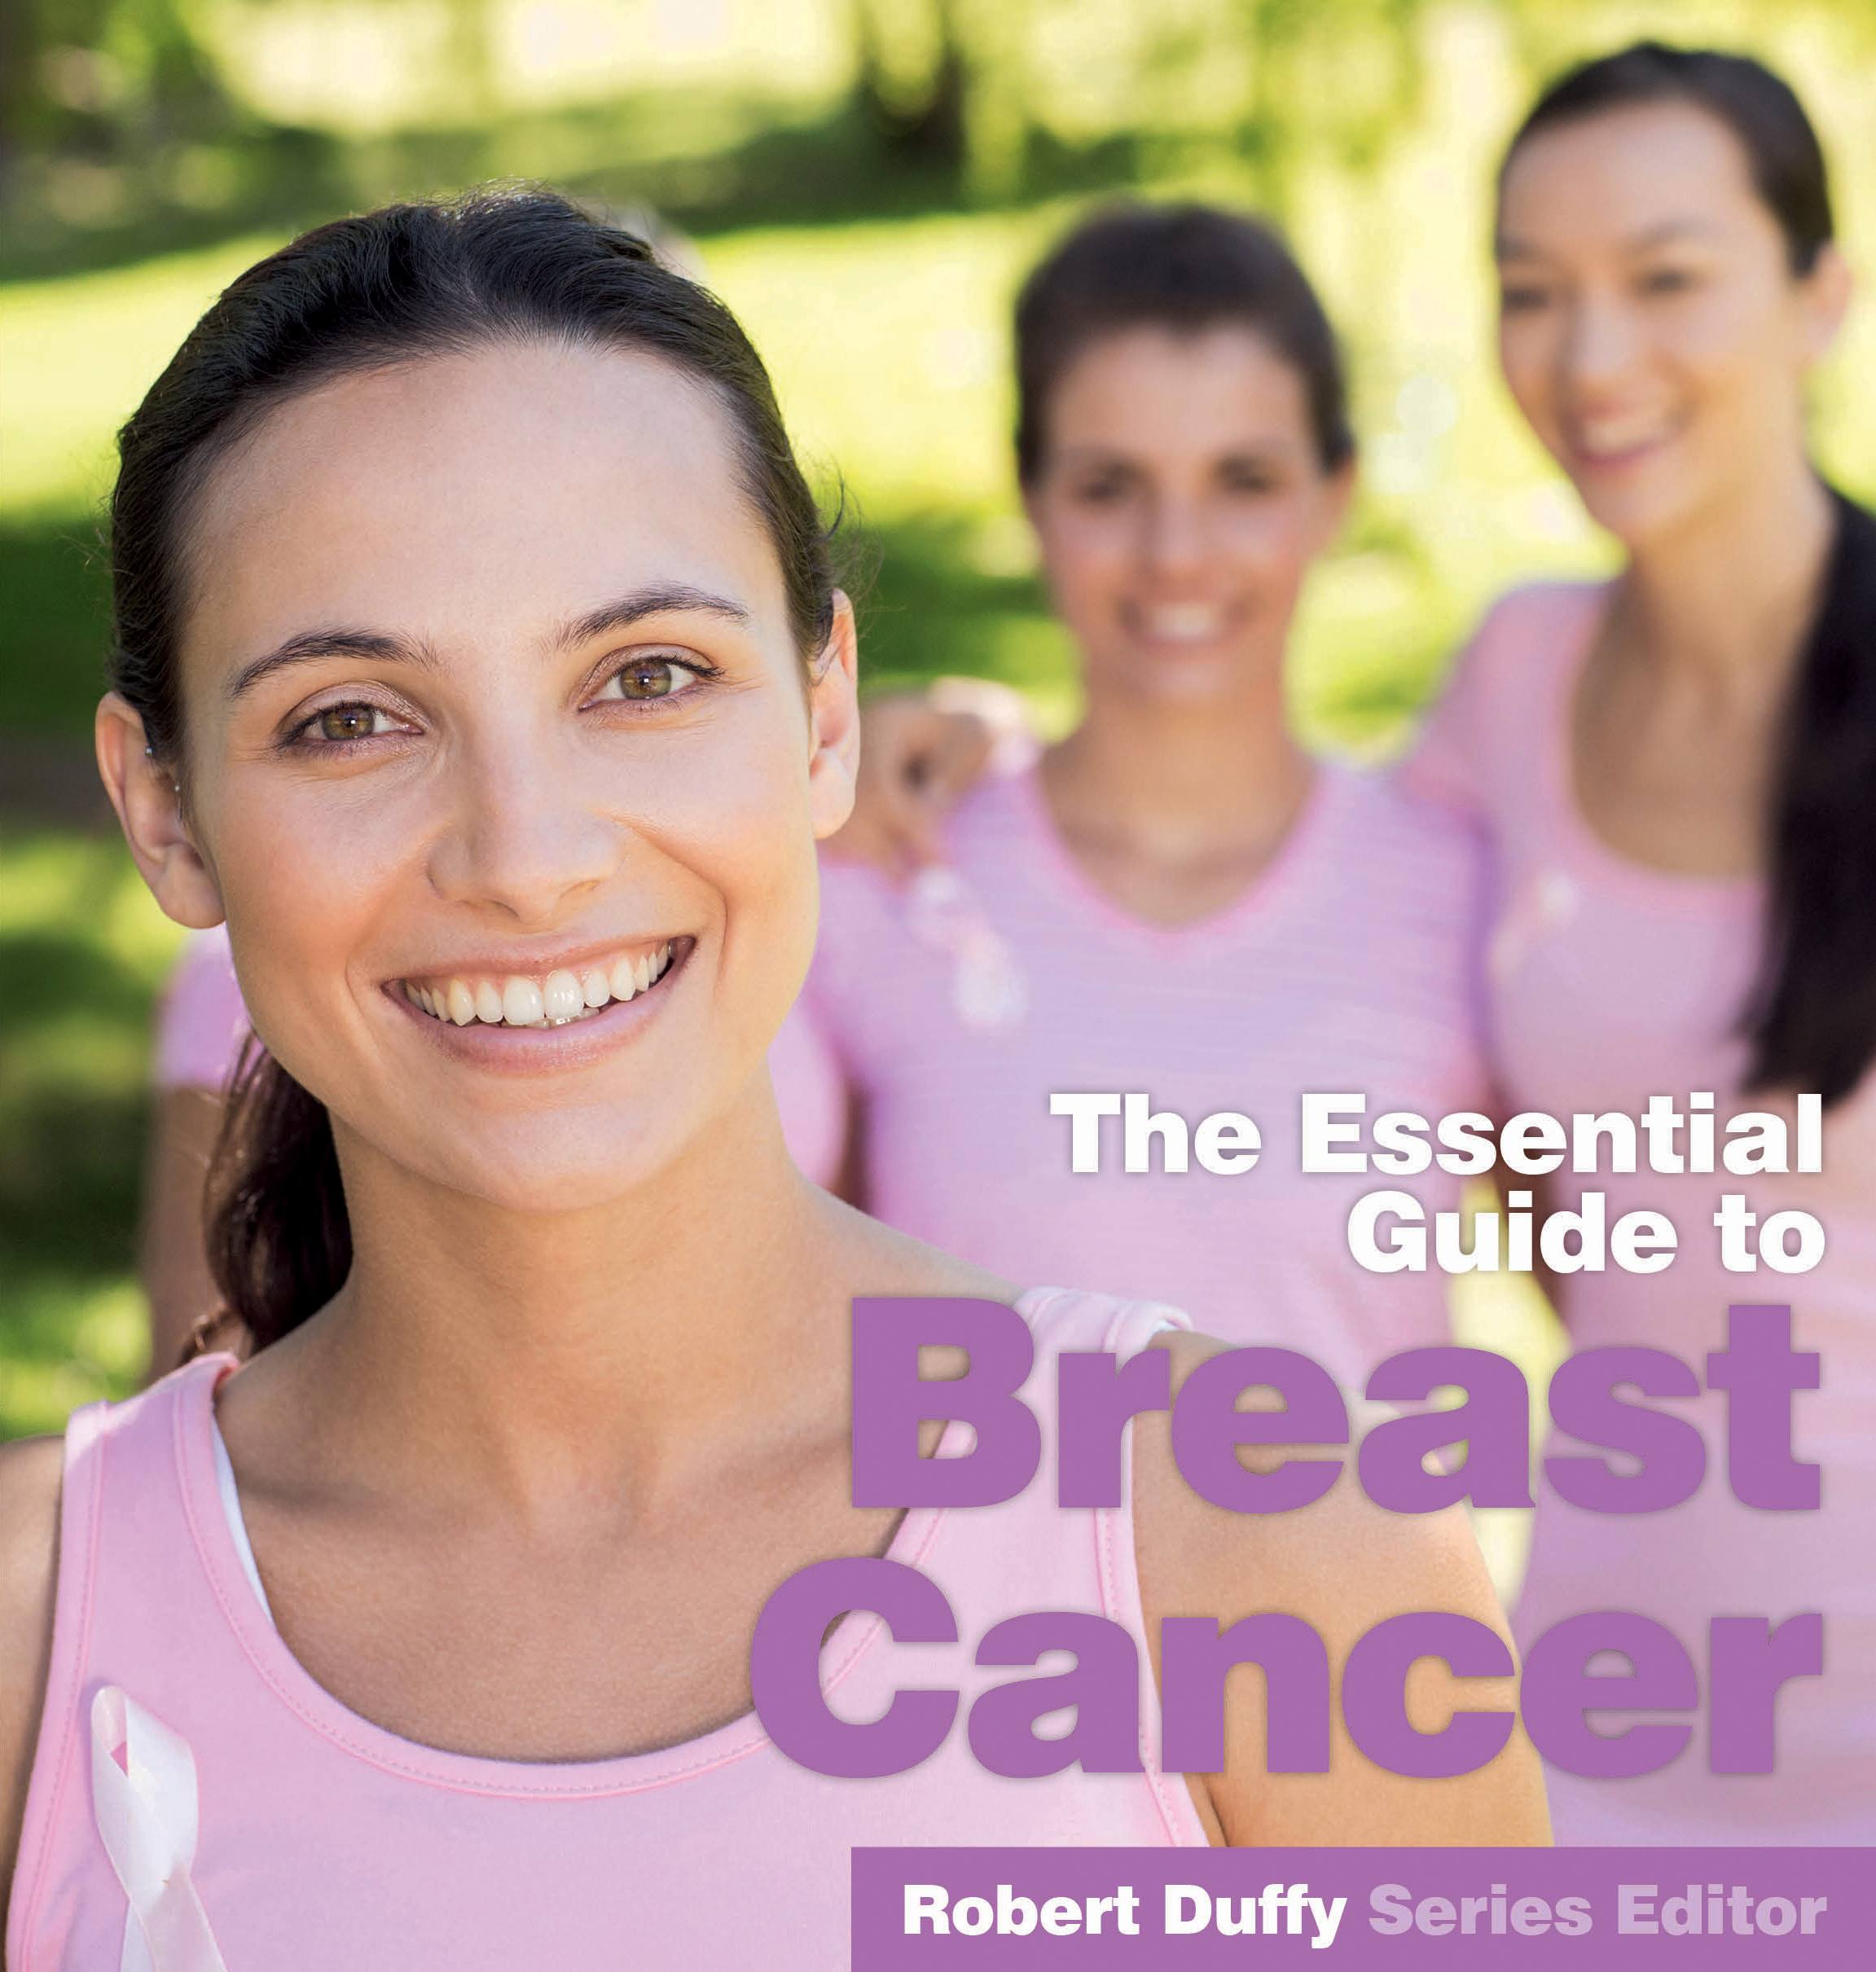 The Essential Guide To Breast Cancer